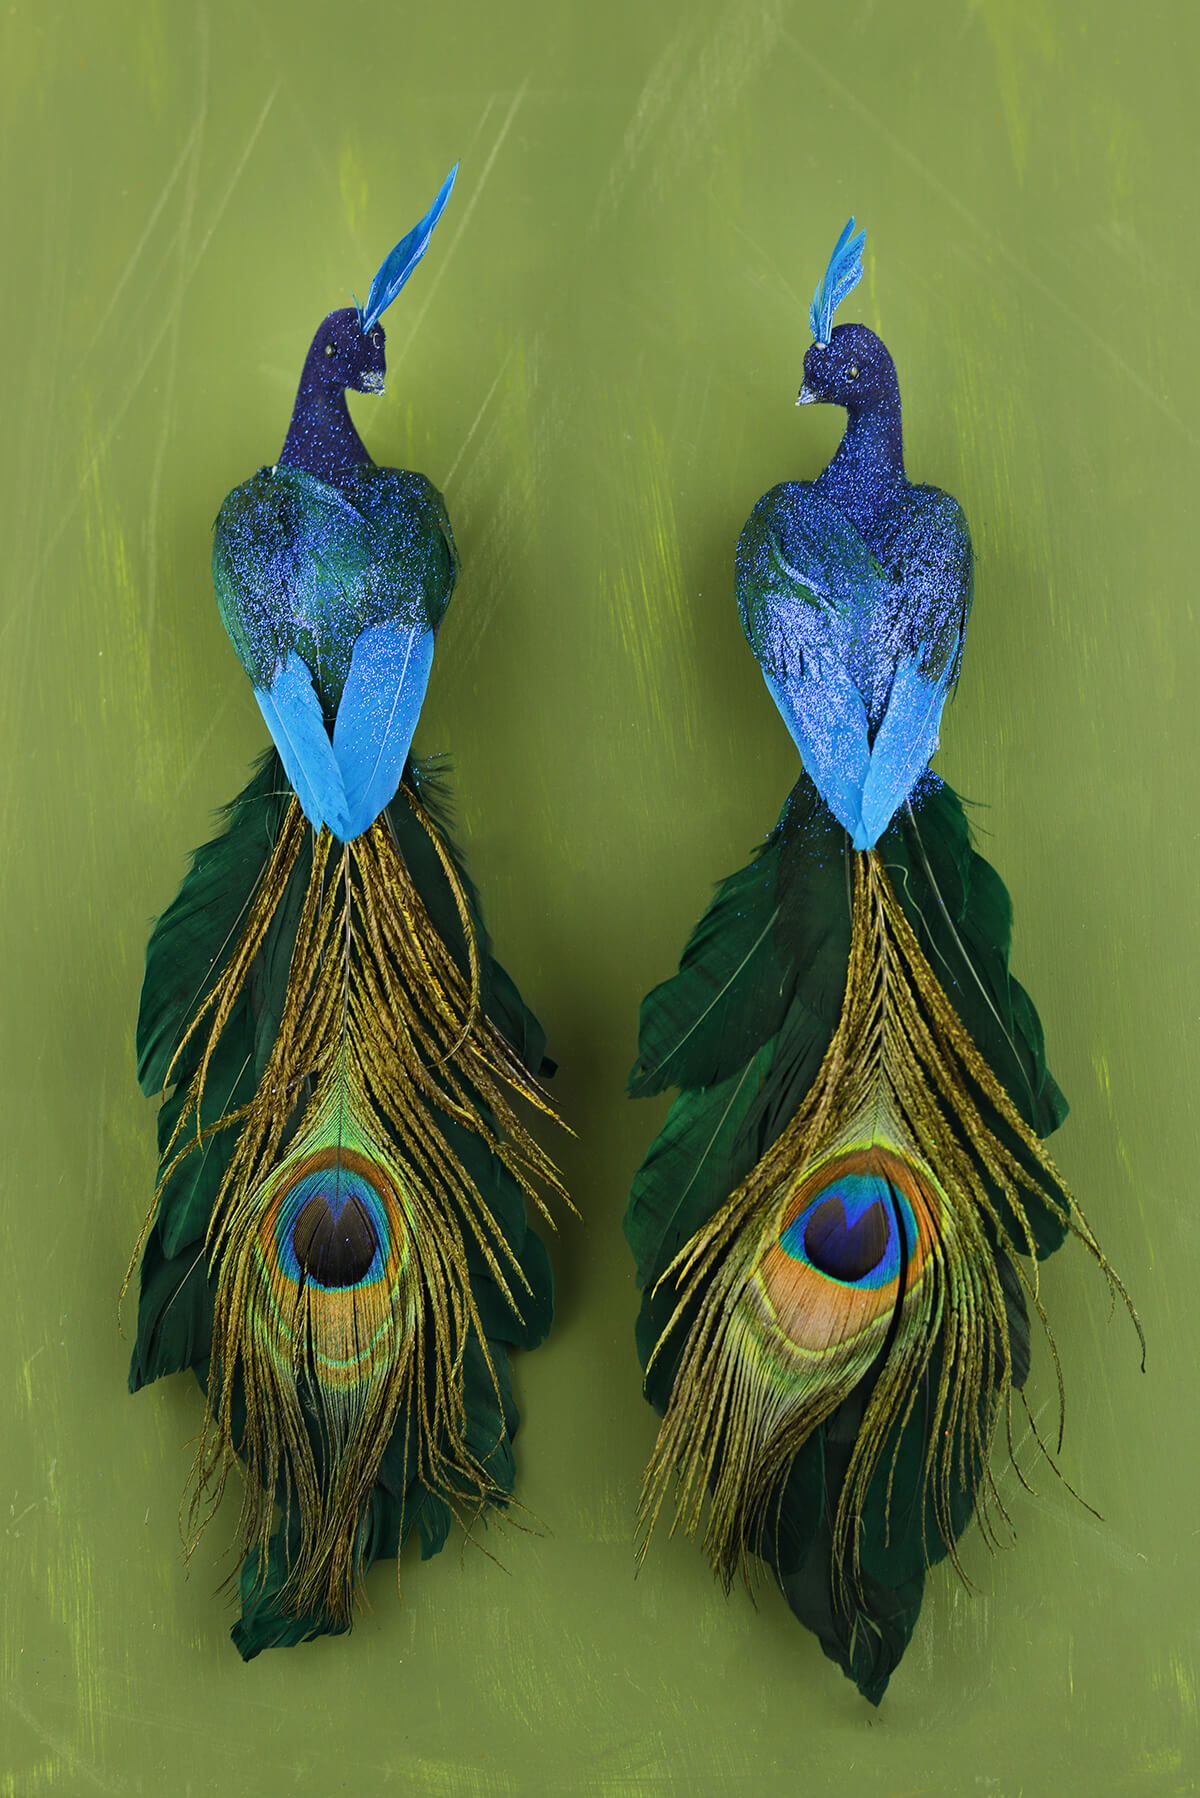 Blue Peacock Birds set Of Two 11